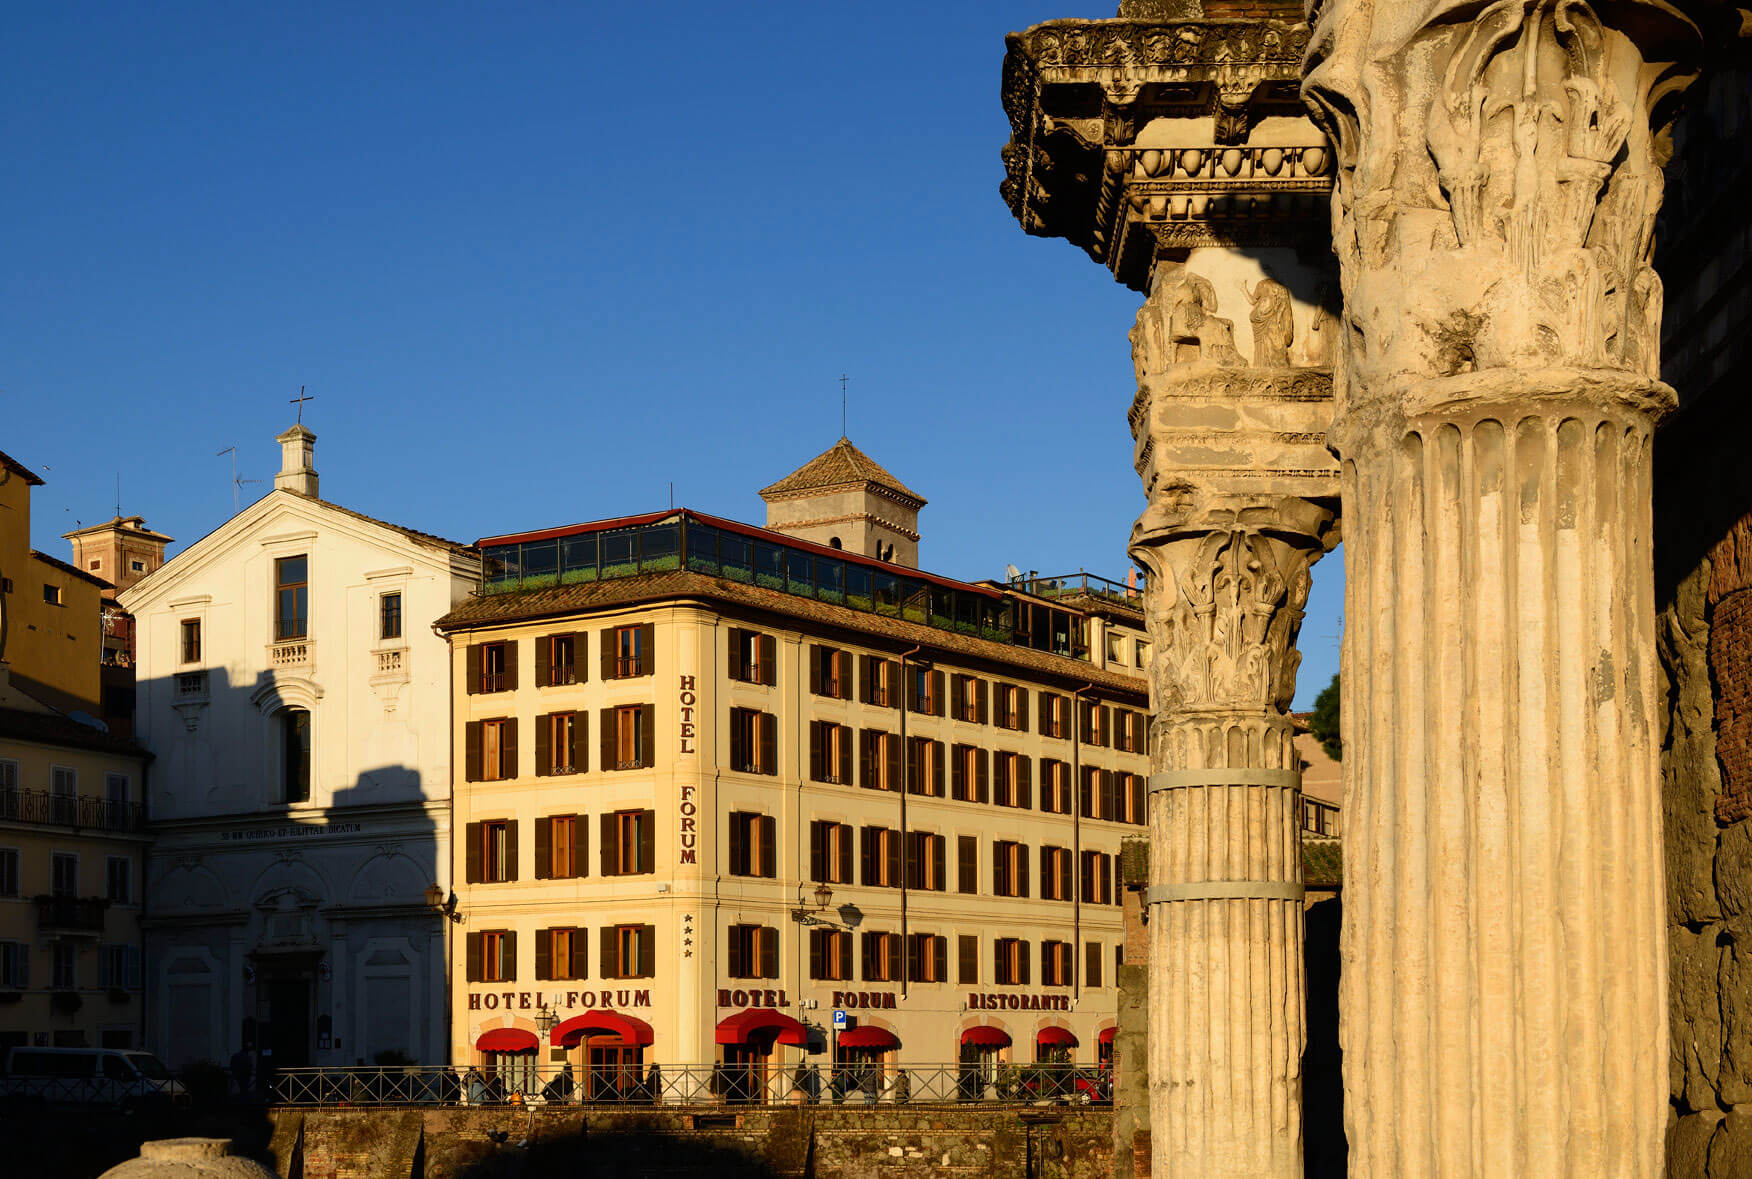 Forum Hotel Rome Hotels In Ancient Rome